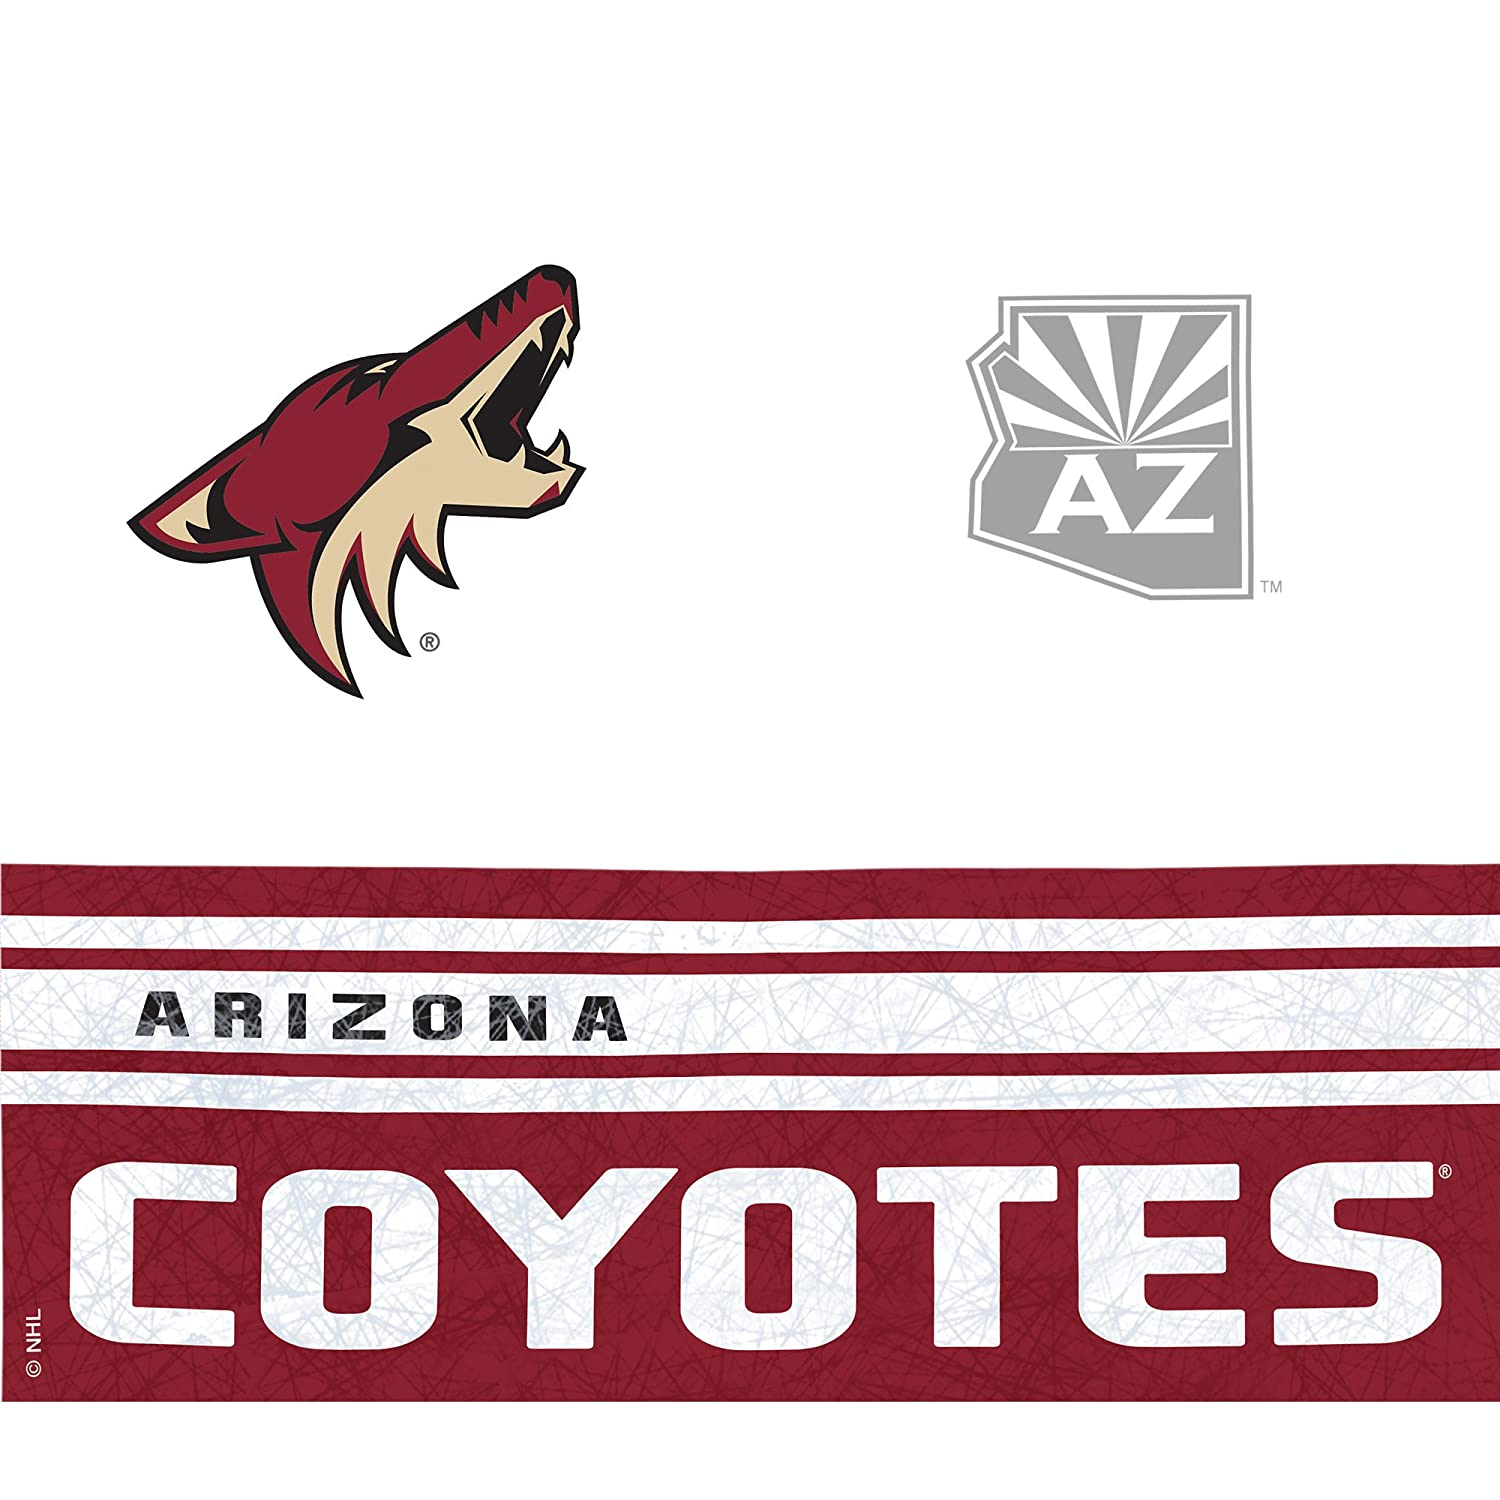 Wrap 24 oz Clear Tervis 1145522NHL Phoenix Coyotes Water Bottle with Grey Lid